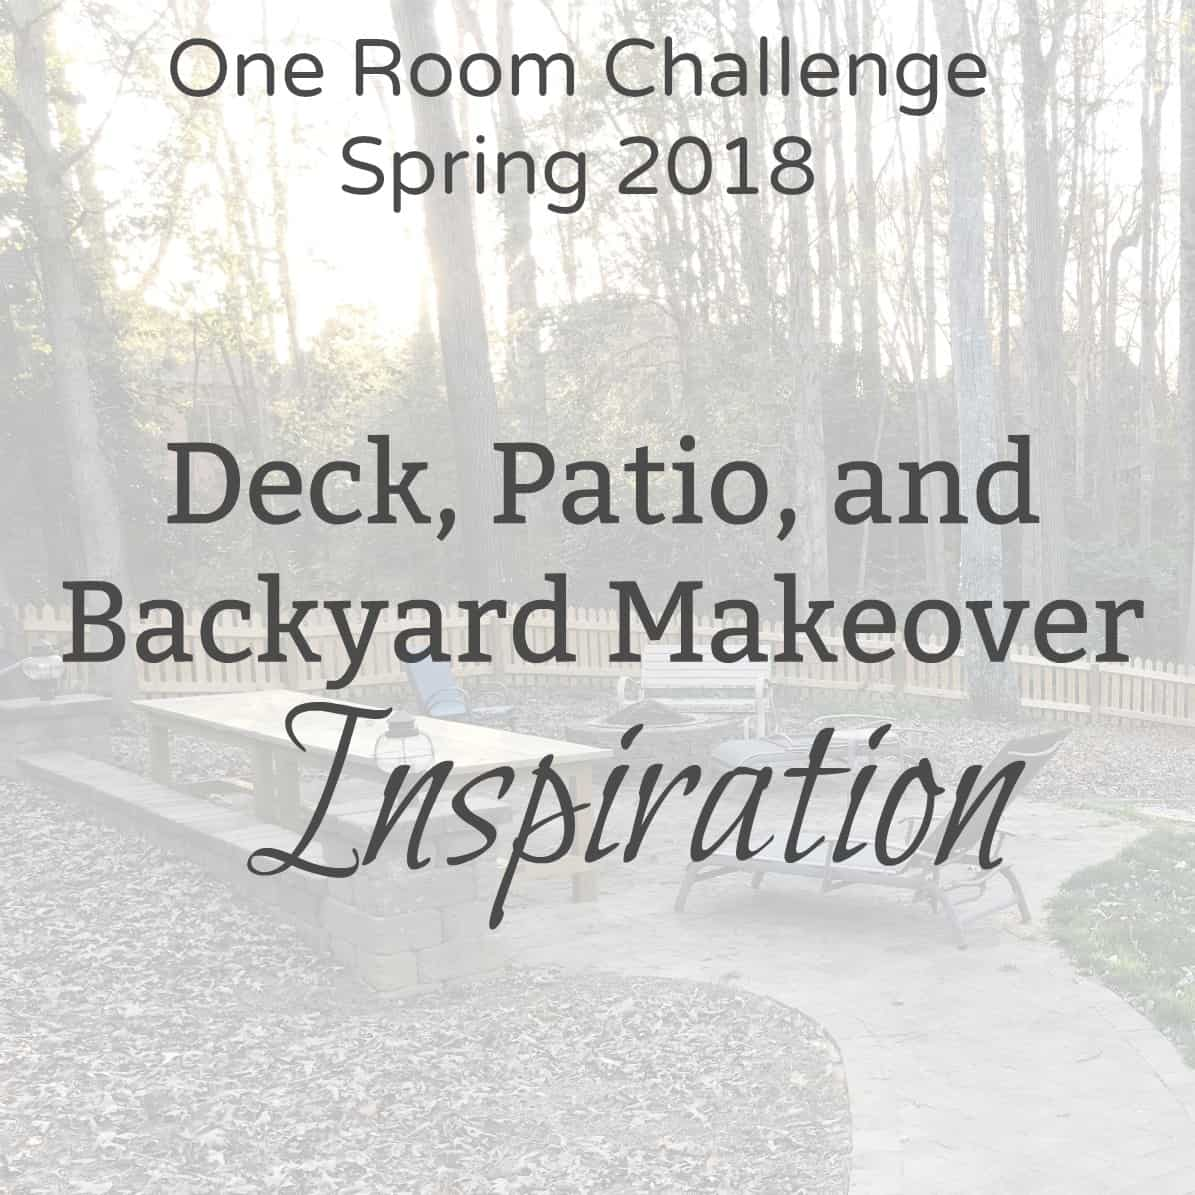 One Room Challenge Spring 2018 Week Two